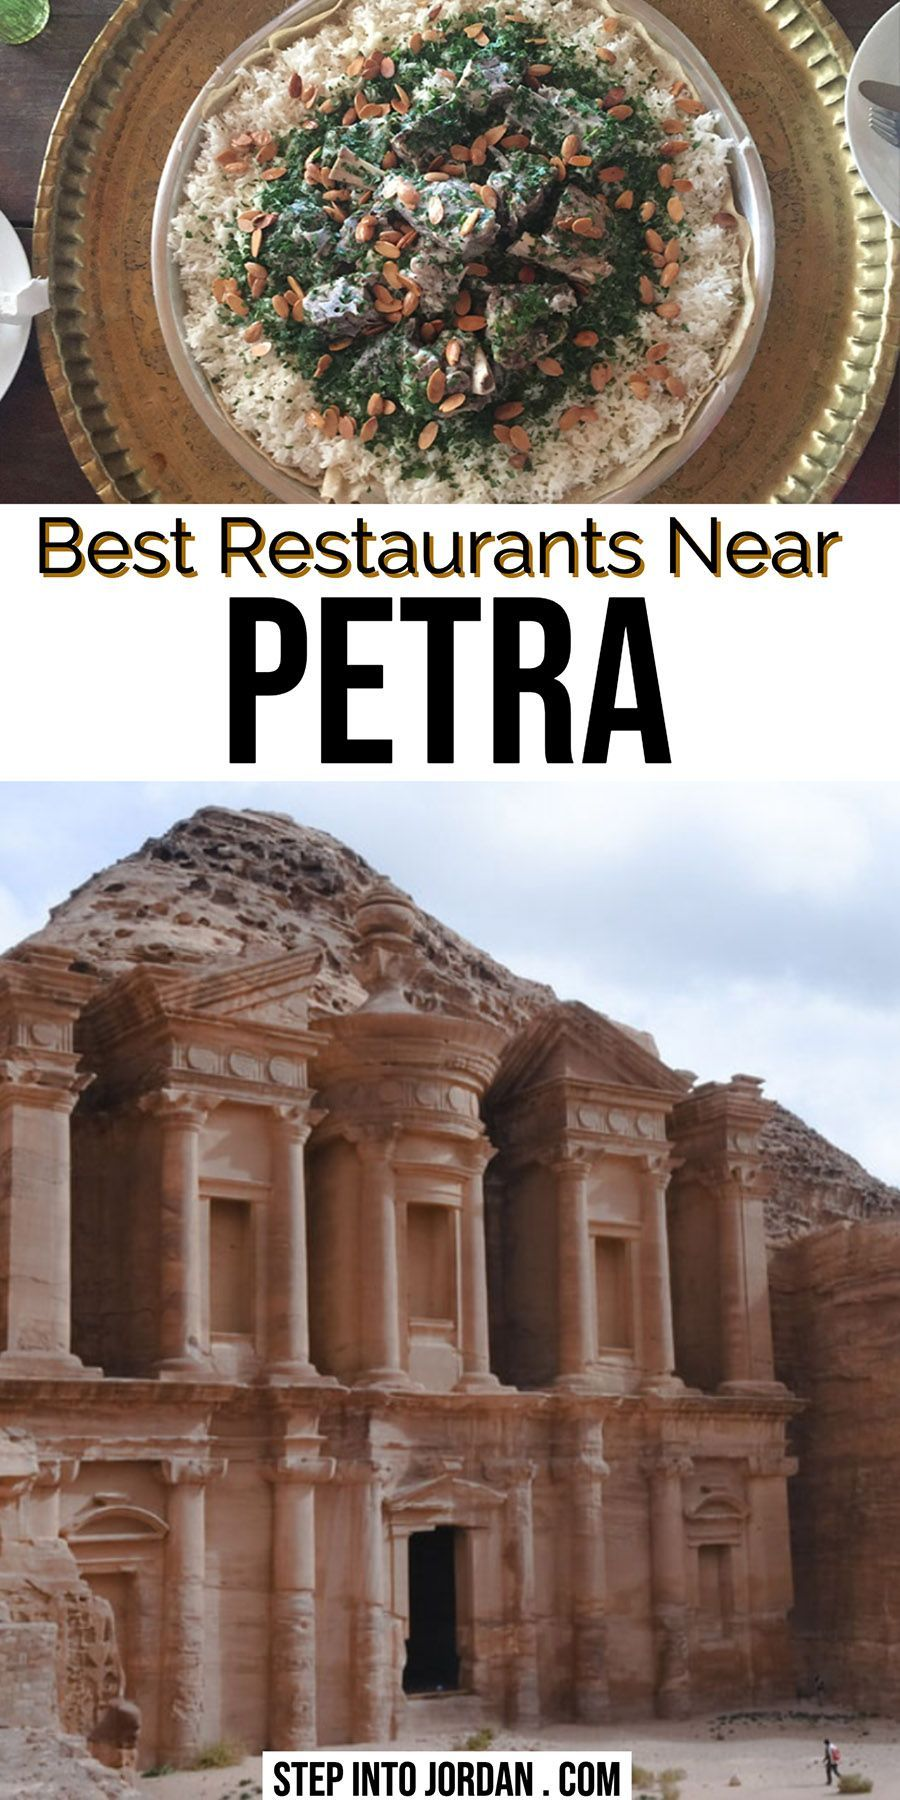 What to Eat Near Petra | Petra Jordan Restaurants | Wadi Musa Restaurants | Best Restaurants in Wadi Musa Jordan | Jordanian Food In Petra #mansaf #petra #jordan #visitjordan #visitpetra #travel #middleeast #UNESCO #petrajordan What to Eat Near Petra | Petra Jordan Restaurants | Wadi Musa Restaurants | Best Restaurants in Wadi Musa Jordan | Jordanian Food In Petra #mansaf #petra #jordan #visitjordan #visitpetra #travel #middleeast #UNESCO #petrajordan